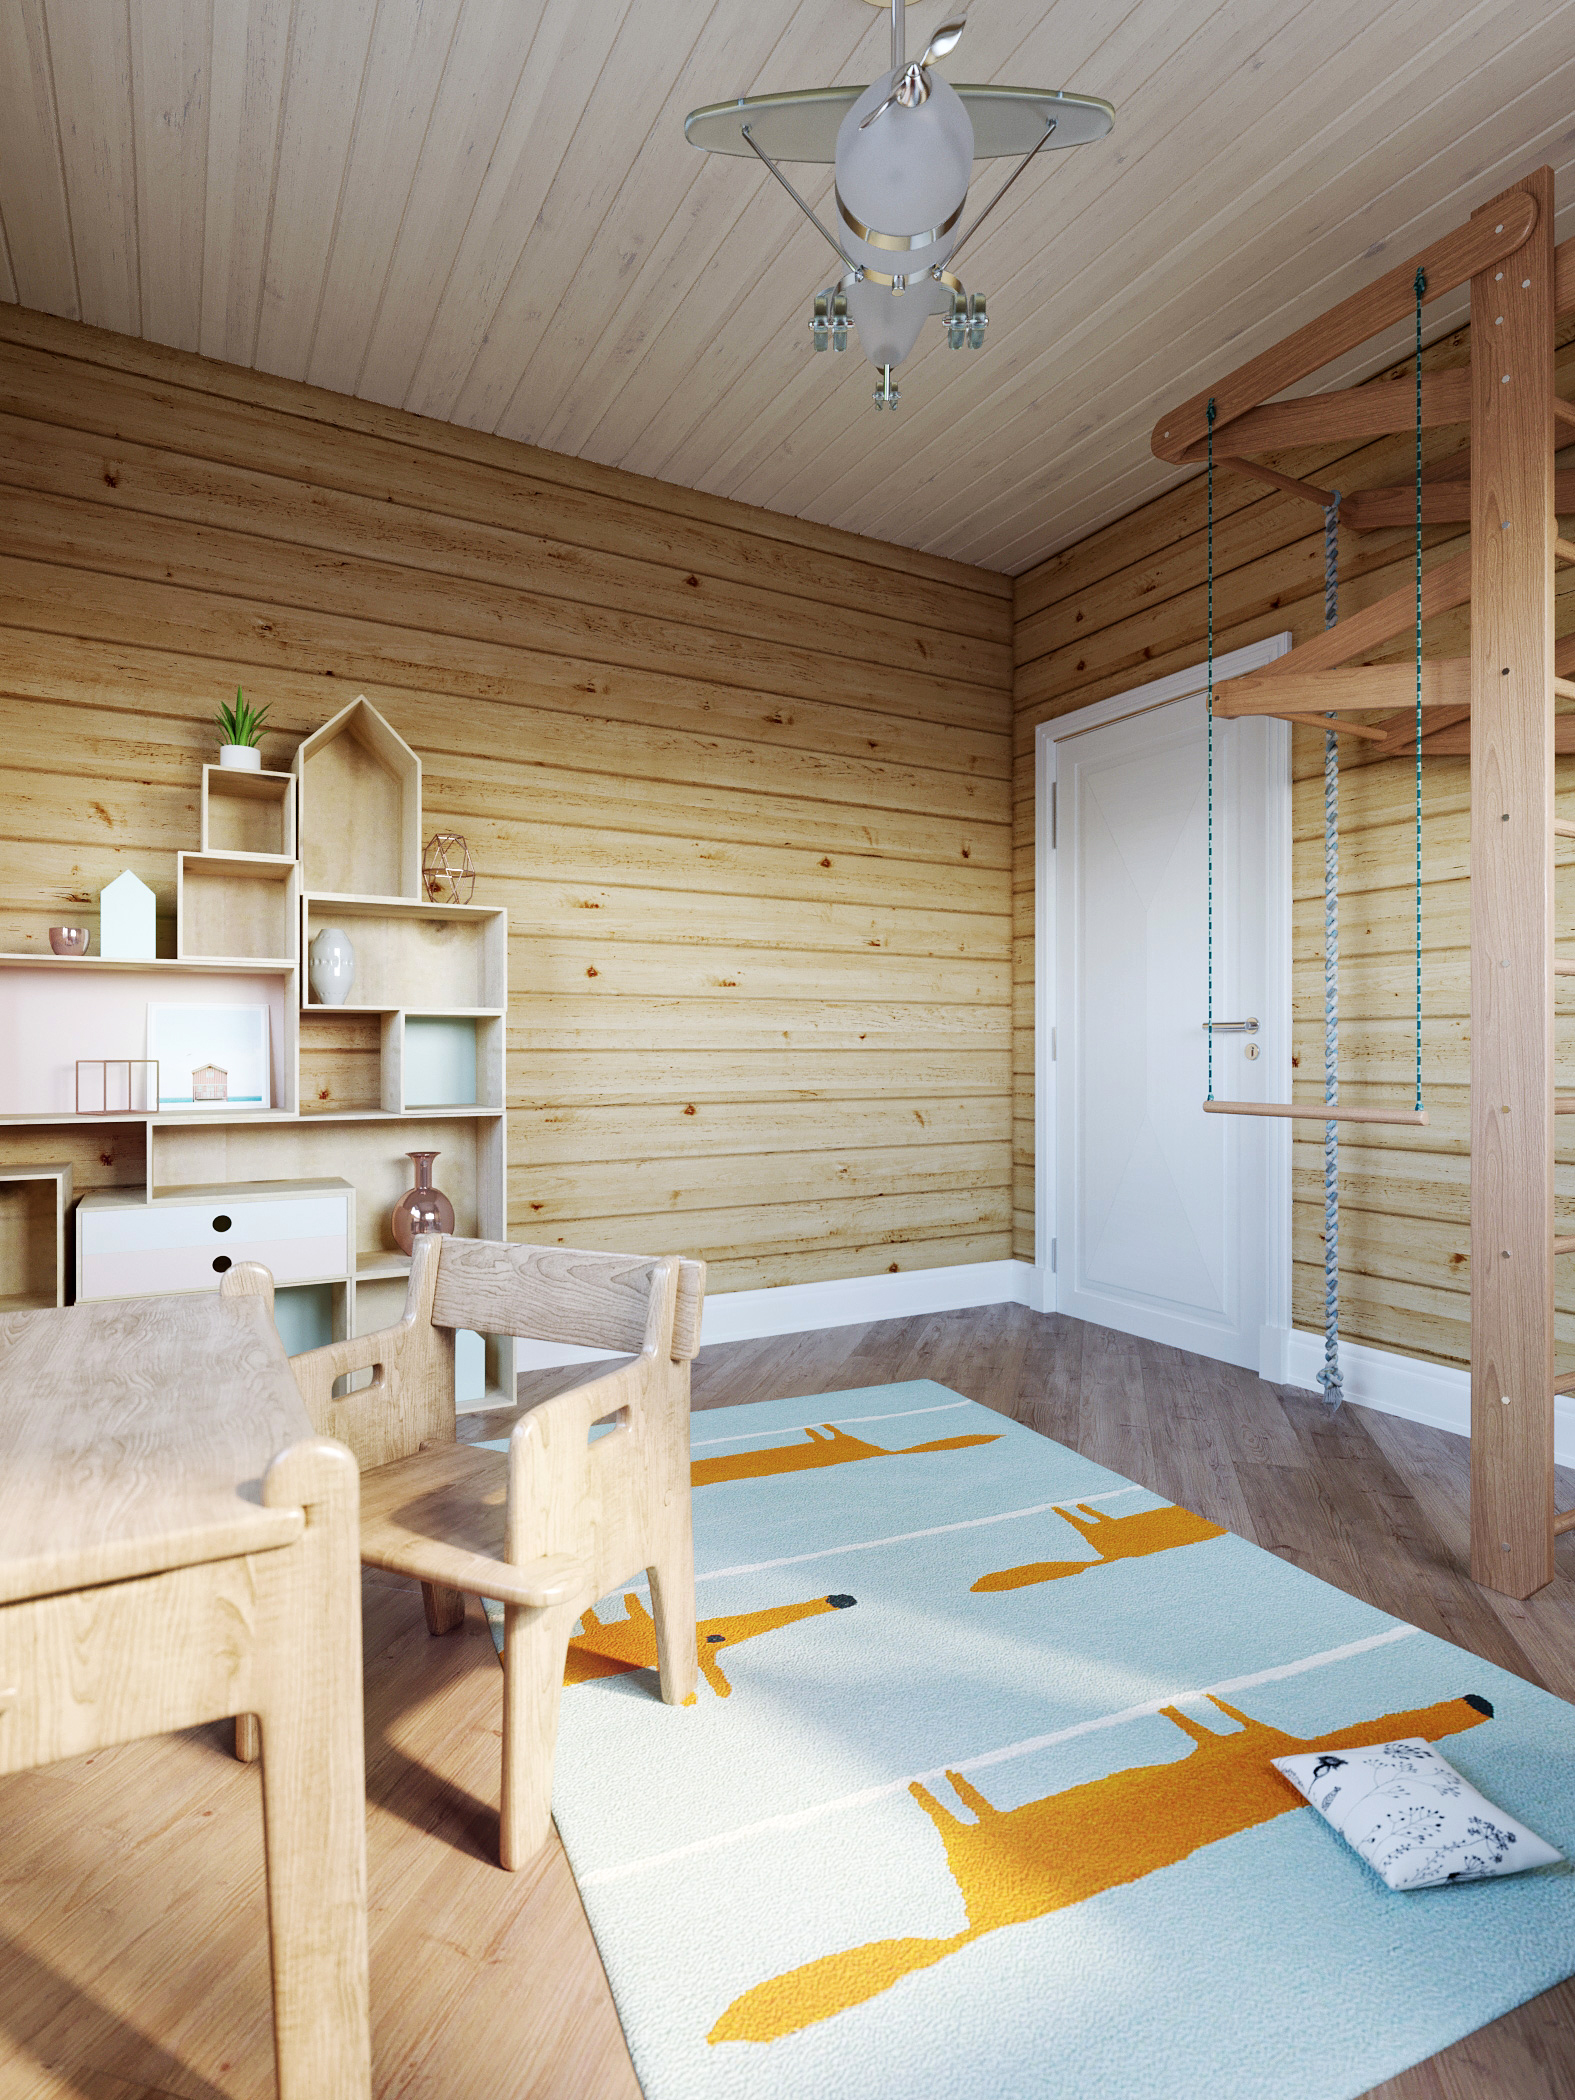 Children's room in a wooden house